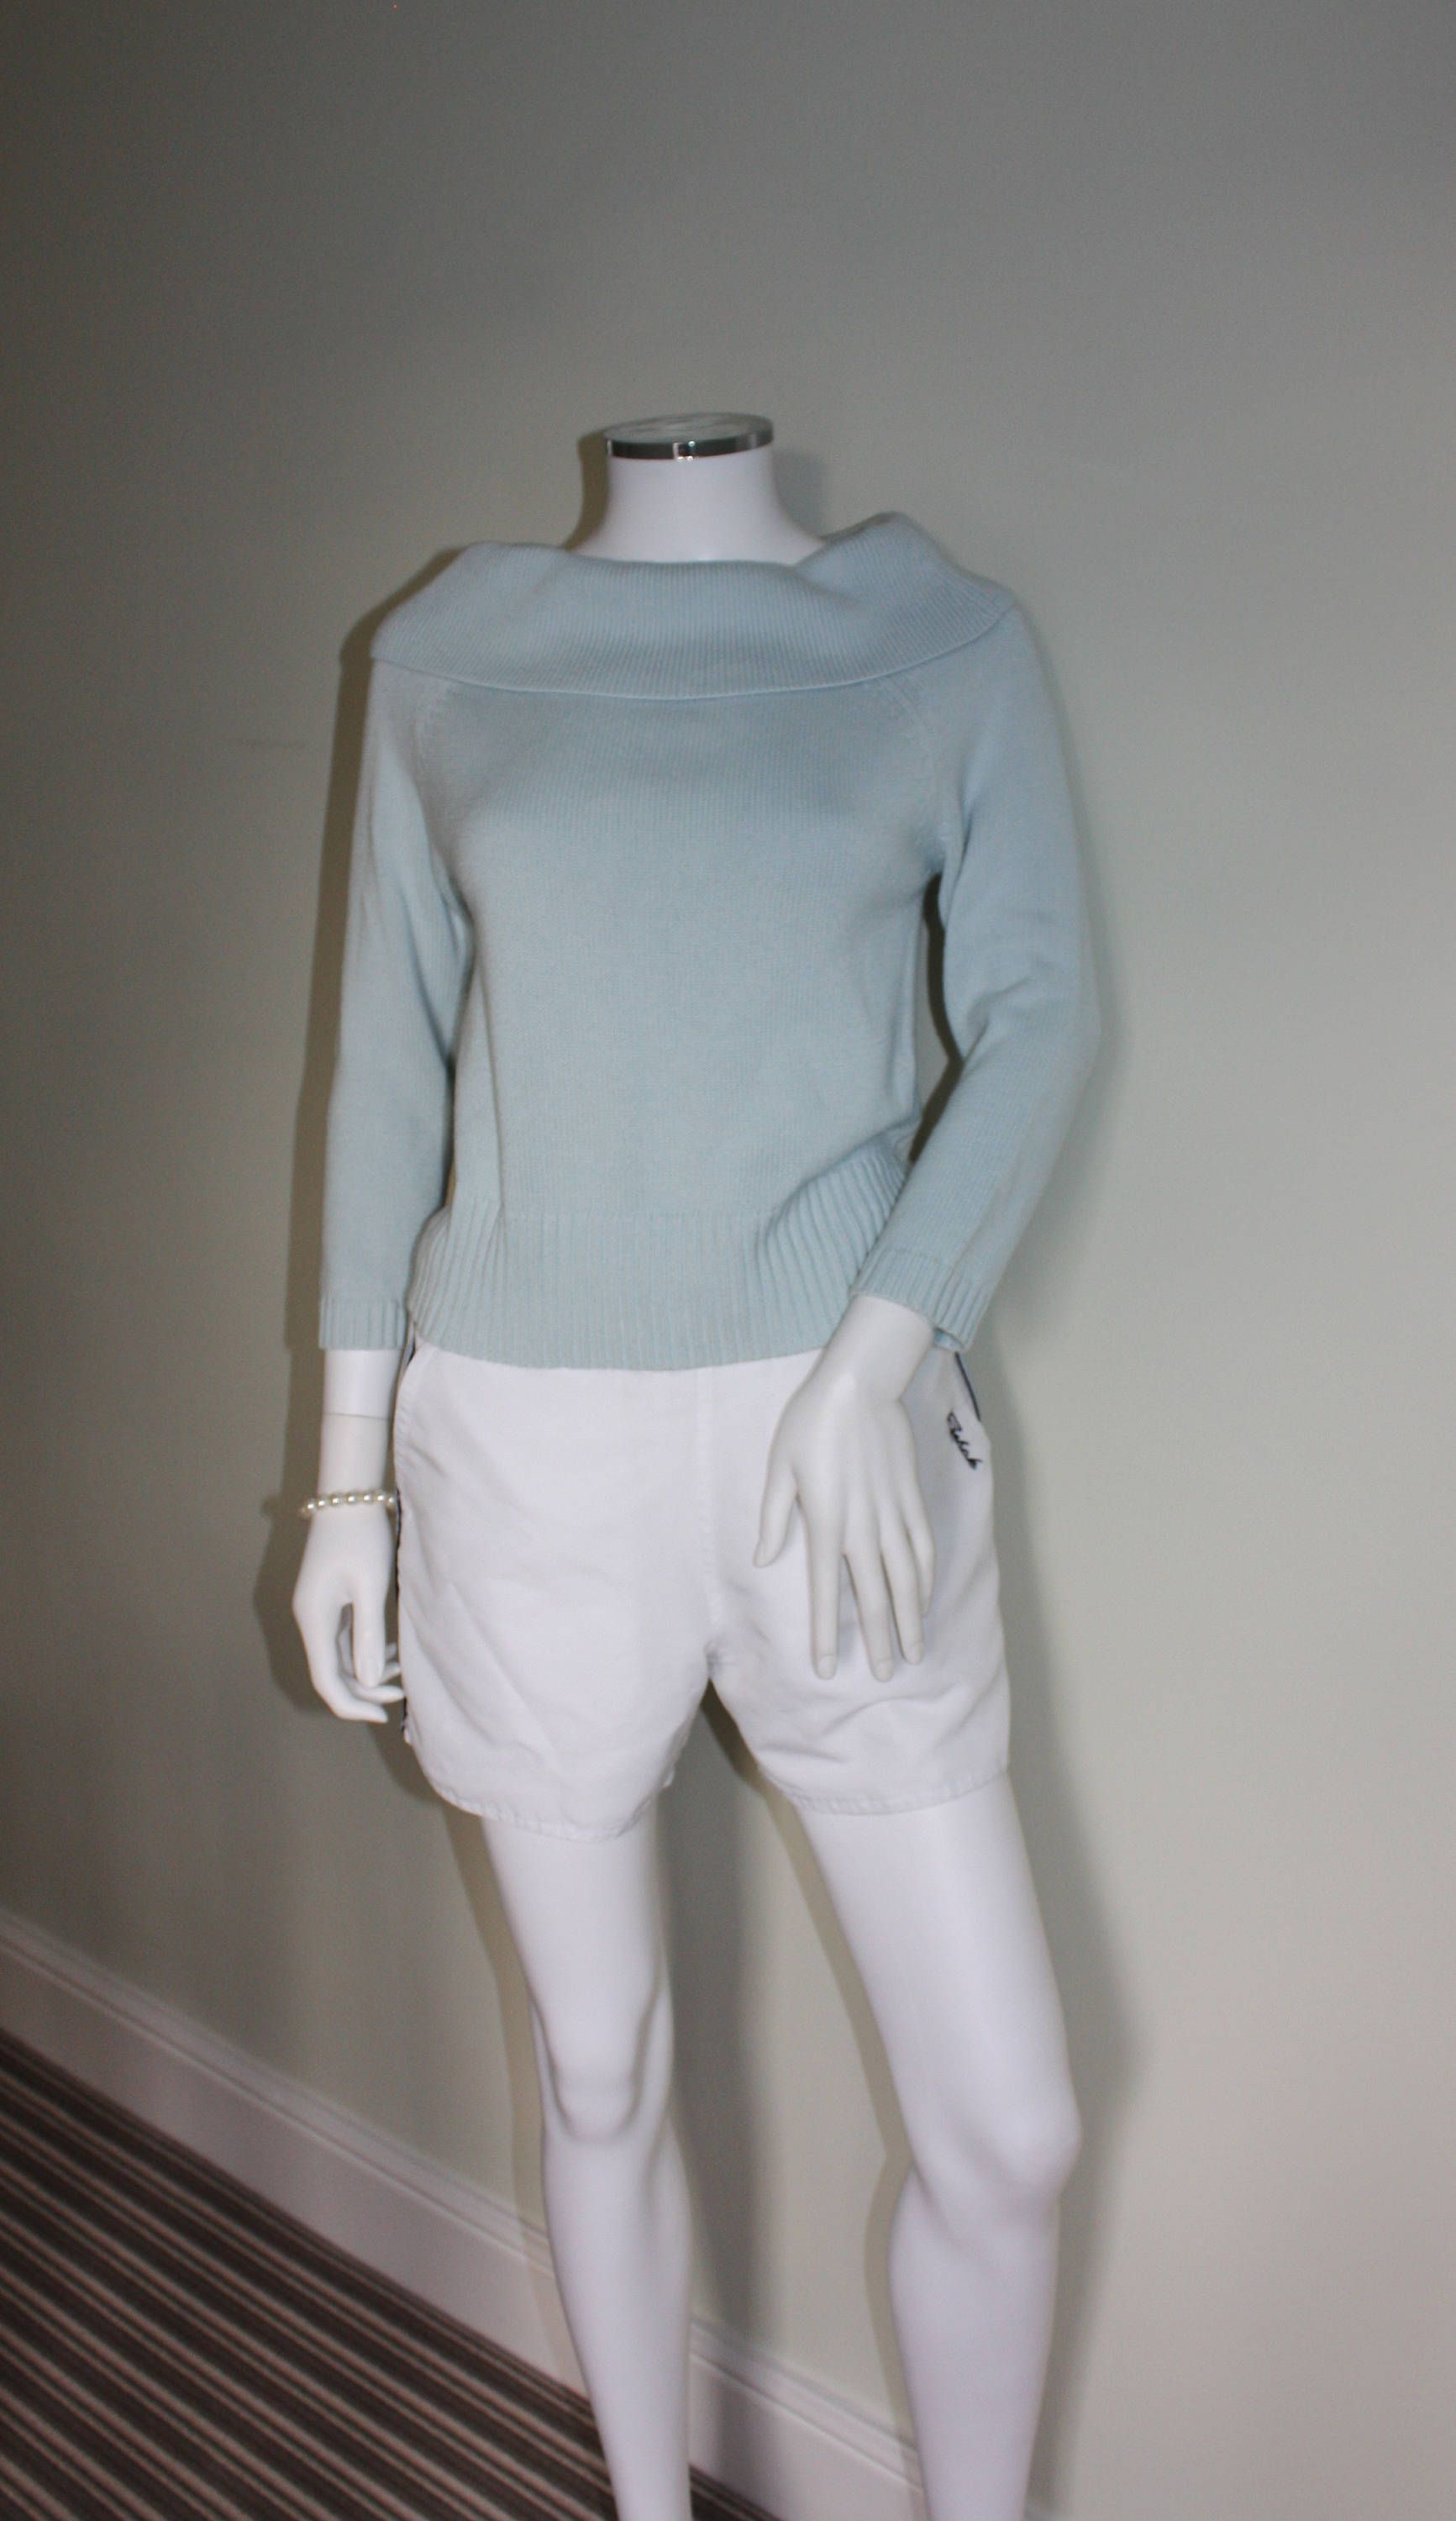 5cade4f5d Vintage PASTEL BLUE boat neck sweater / jumper / pullover, SMALL ...